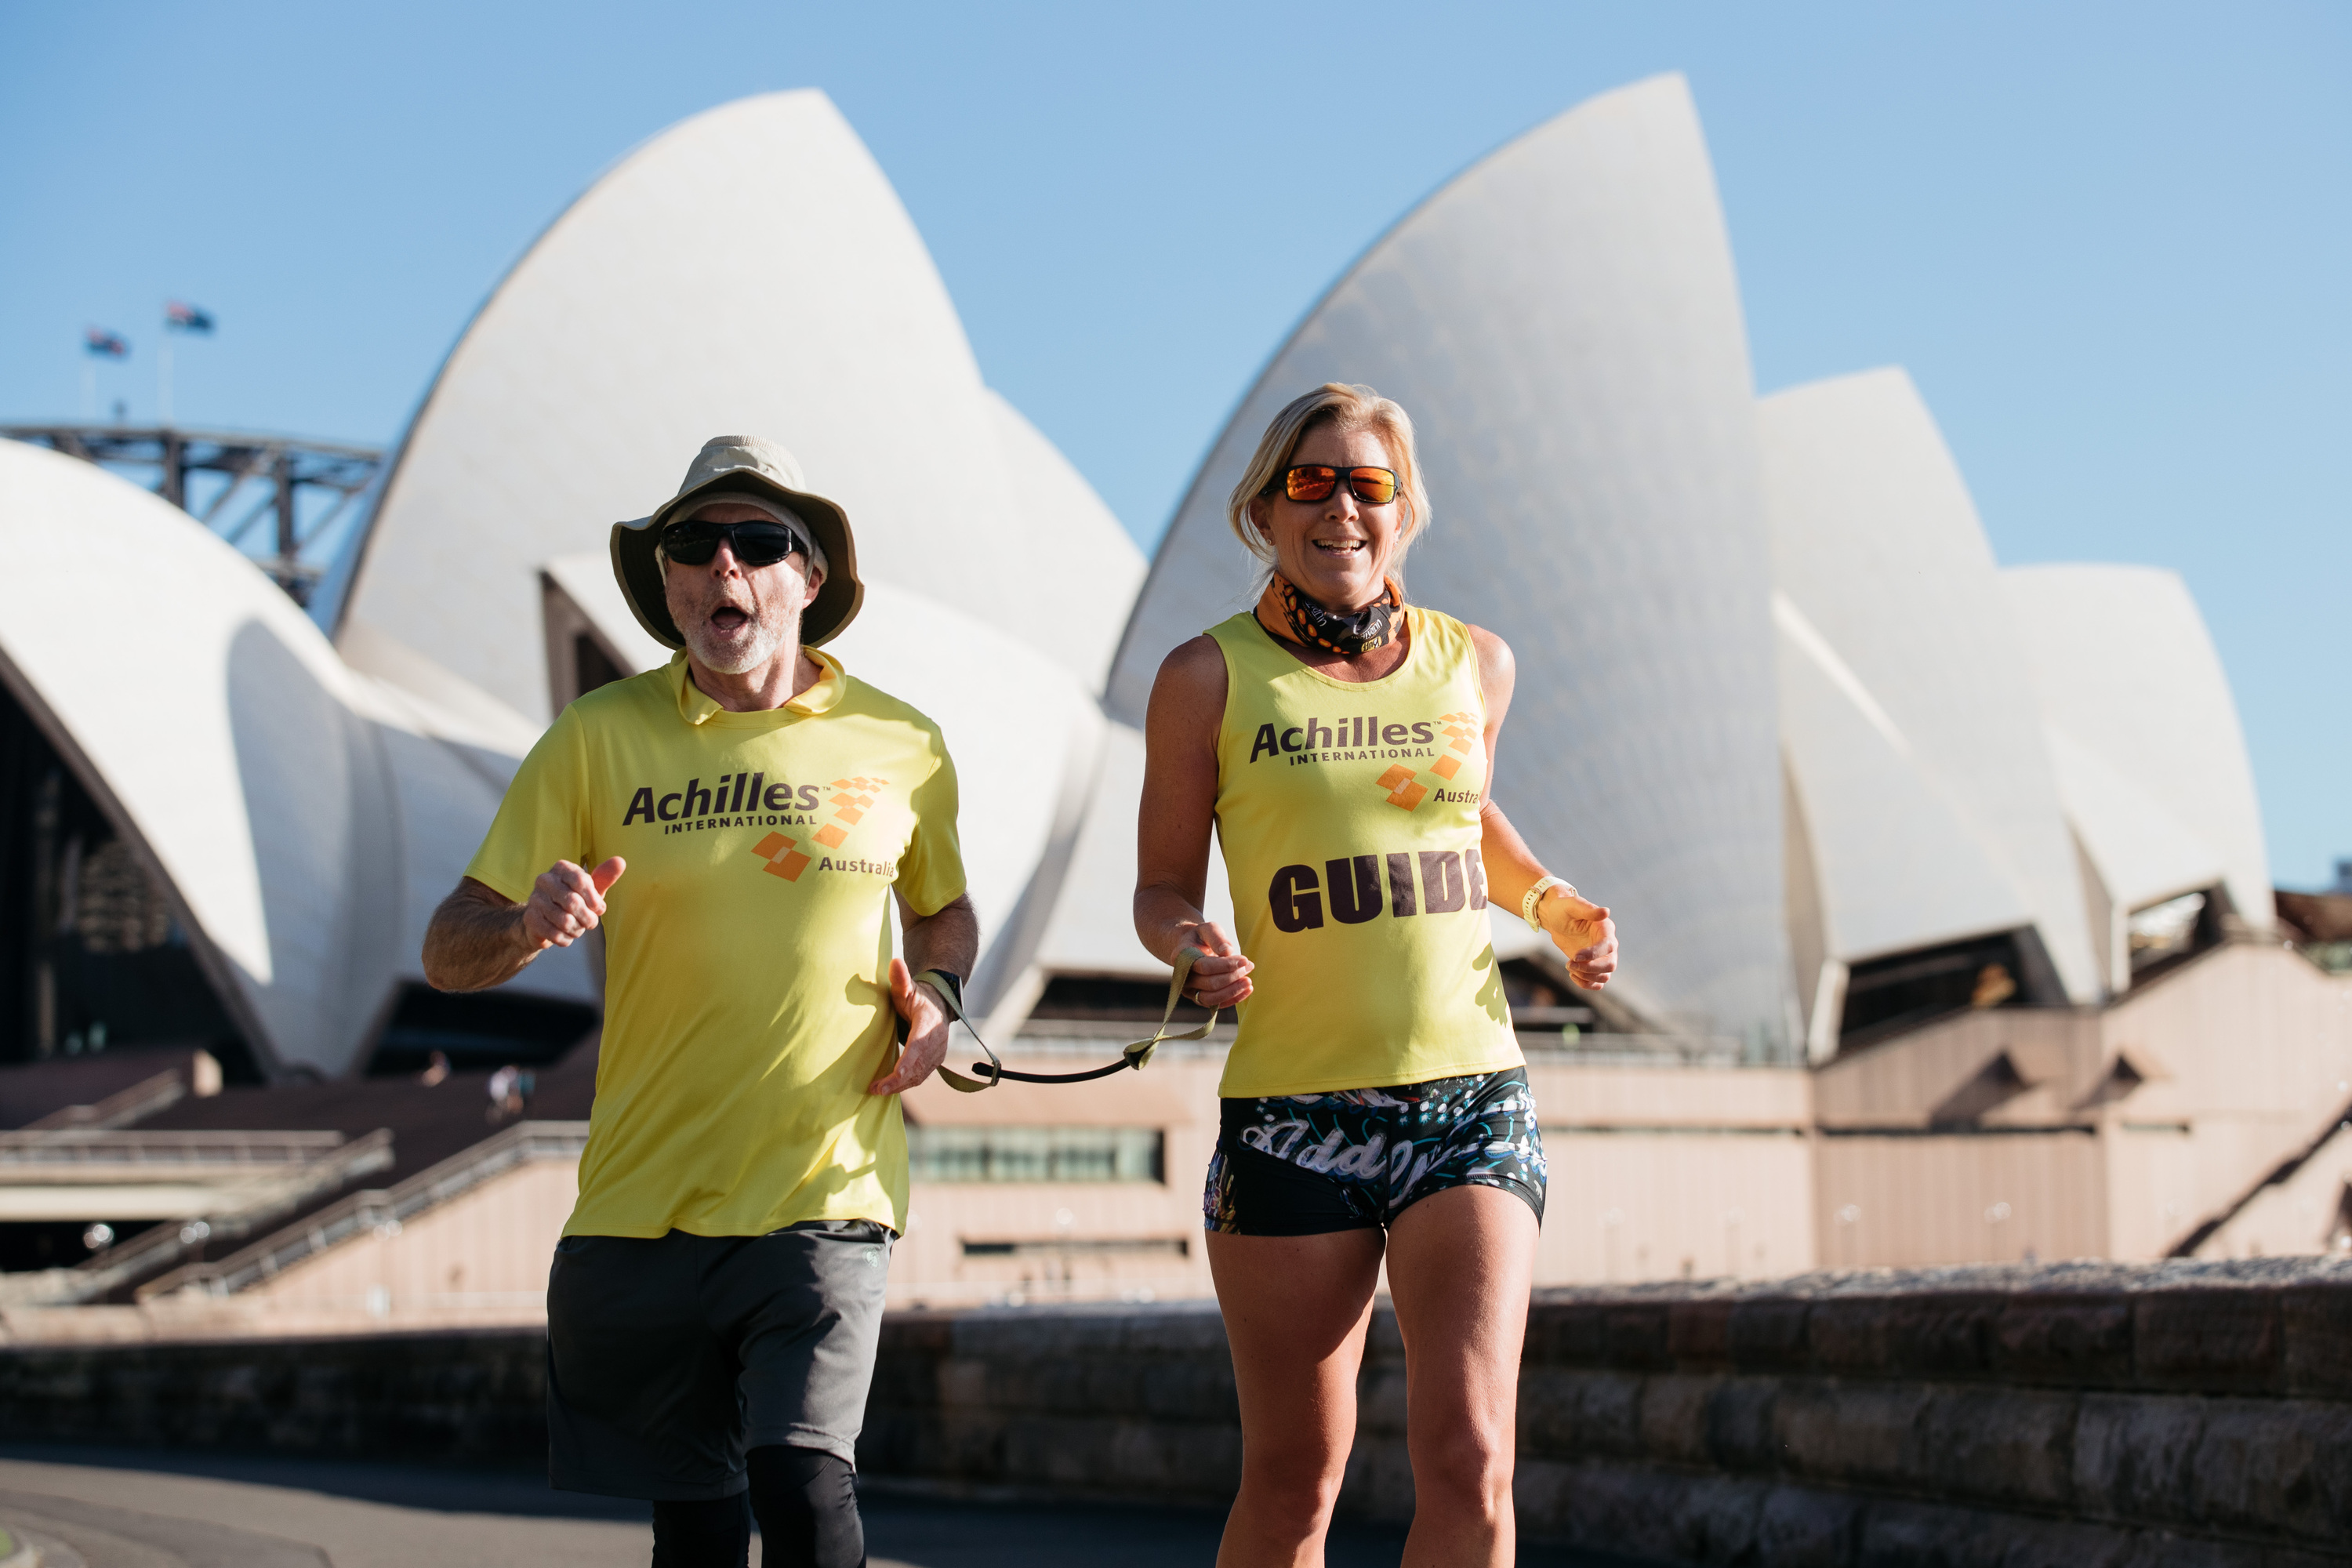 Achilles Running Club runners Stephen Green, a vision impaired runner, and Julia Wenner, his guide, running in Sydney Botanic Gardens with the Opera House in the background